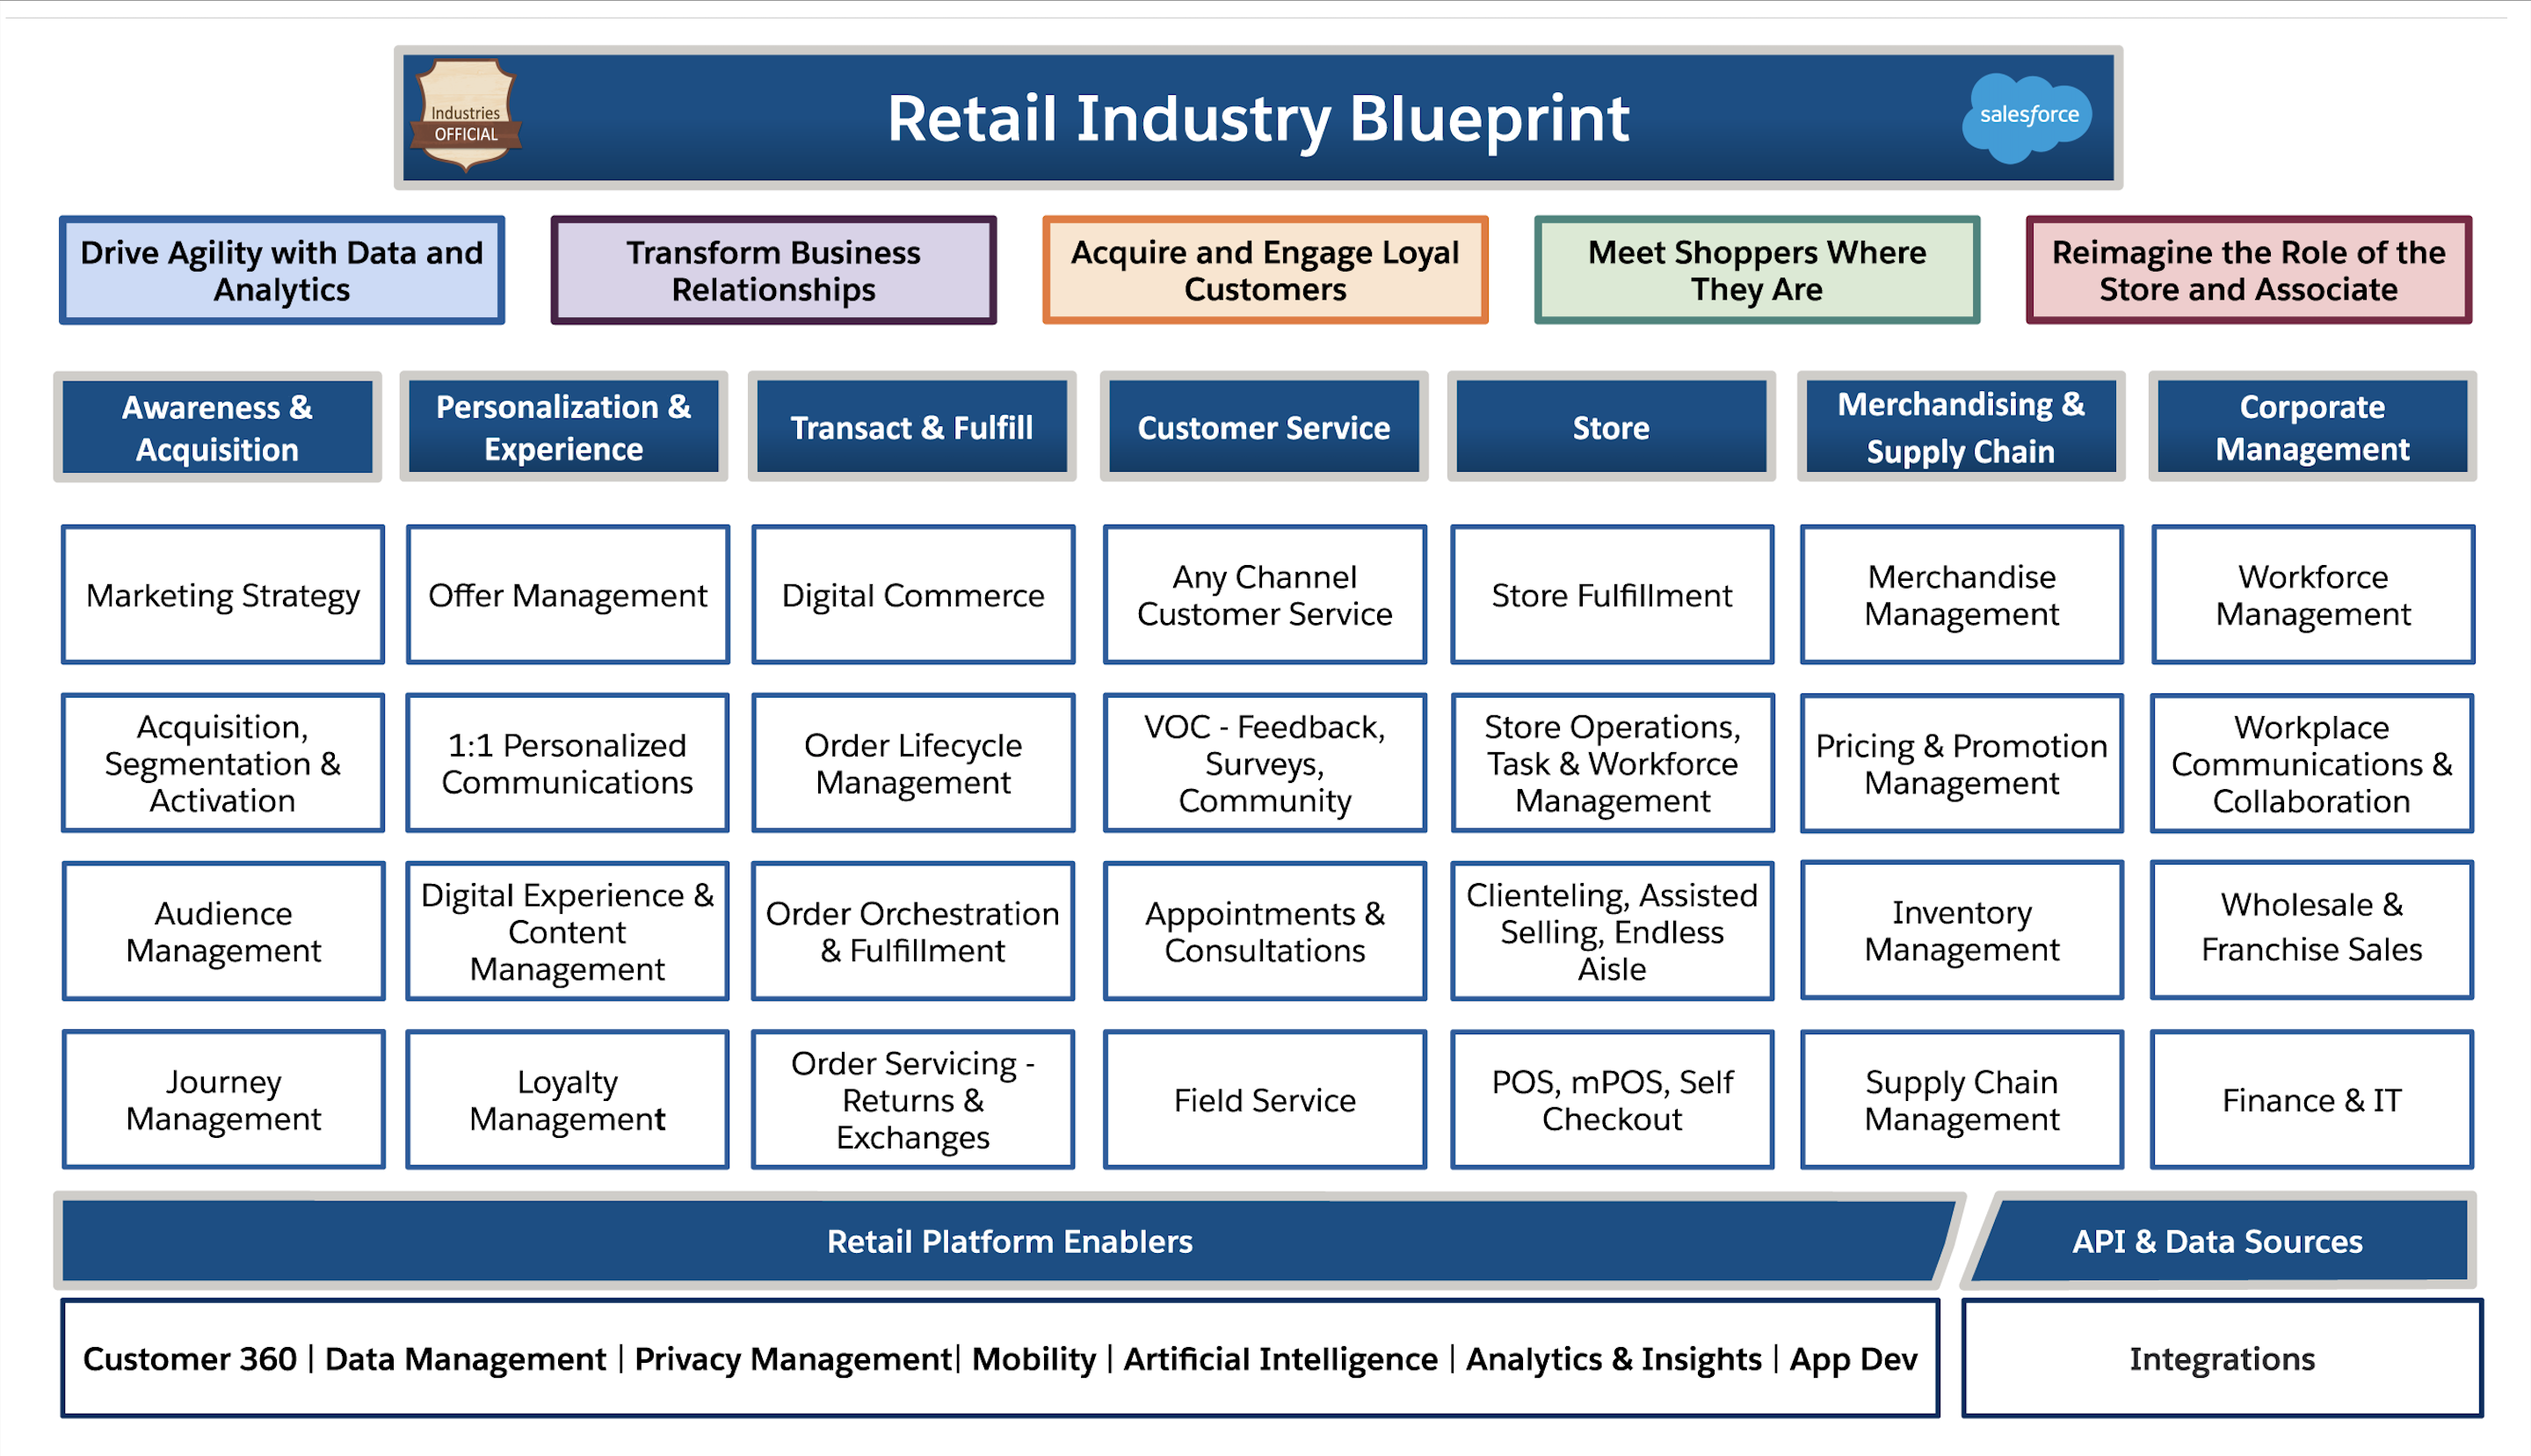 Retail Industry Blueprint